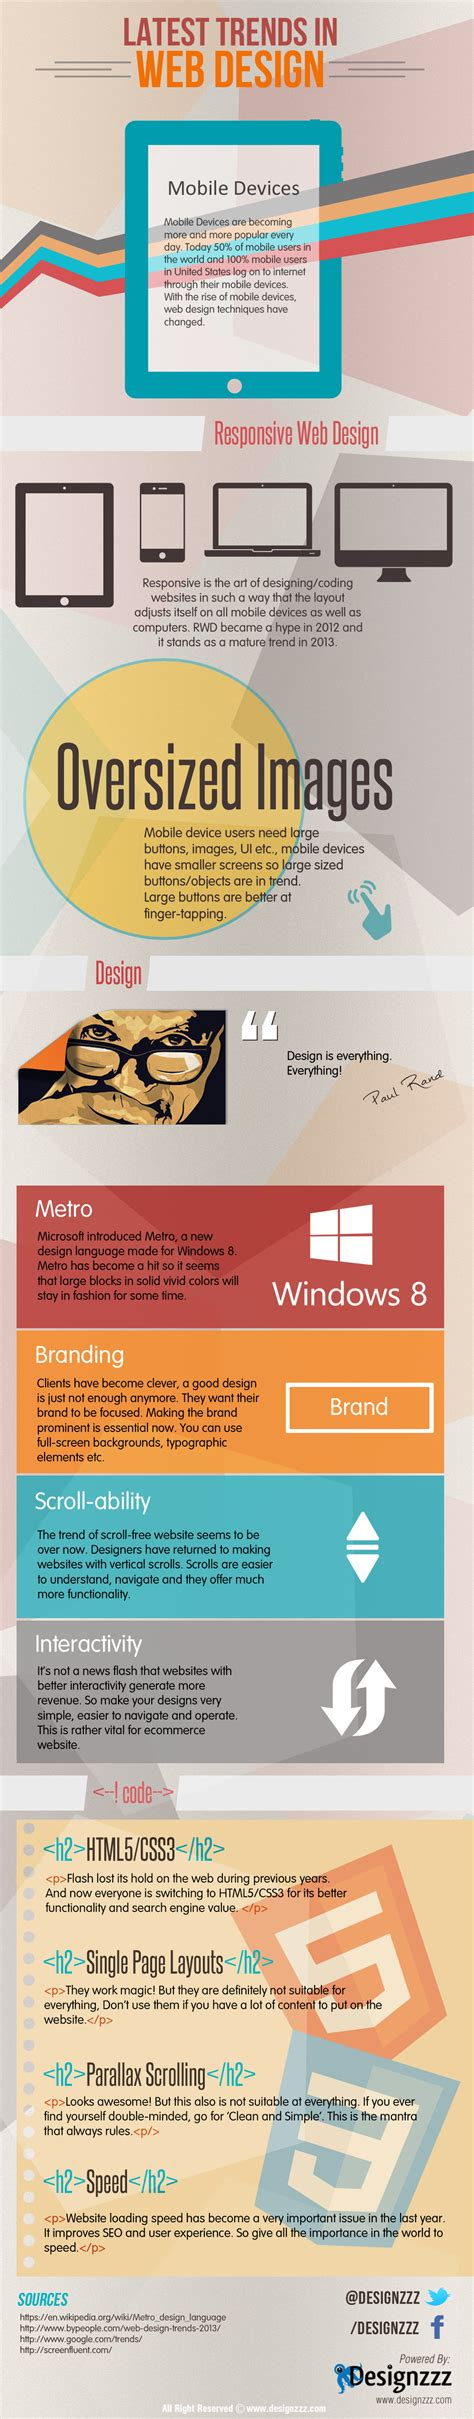 web layout trends designzzz infographic latest trends in web design